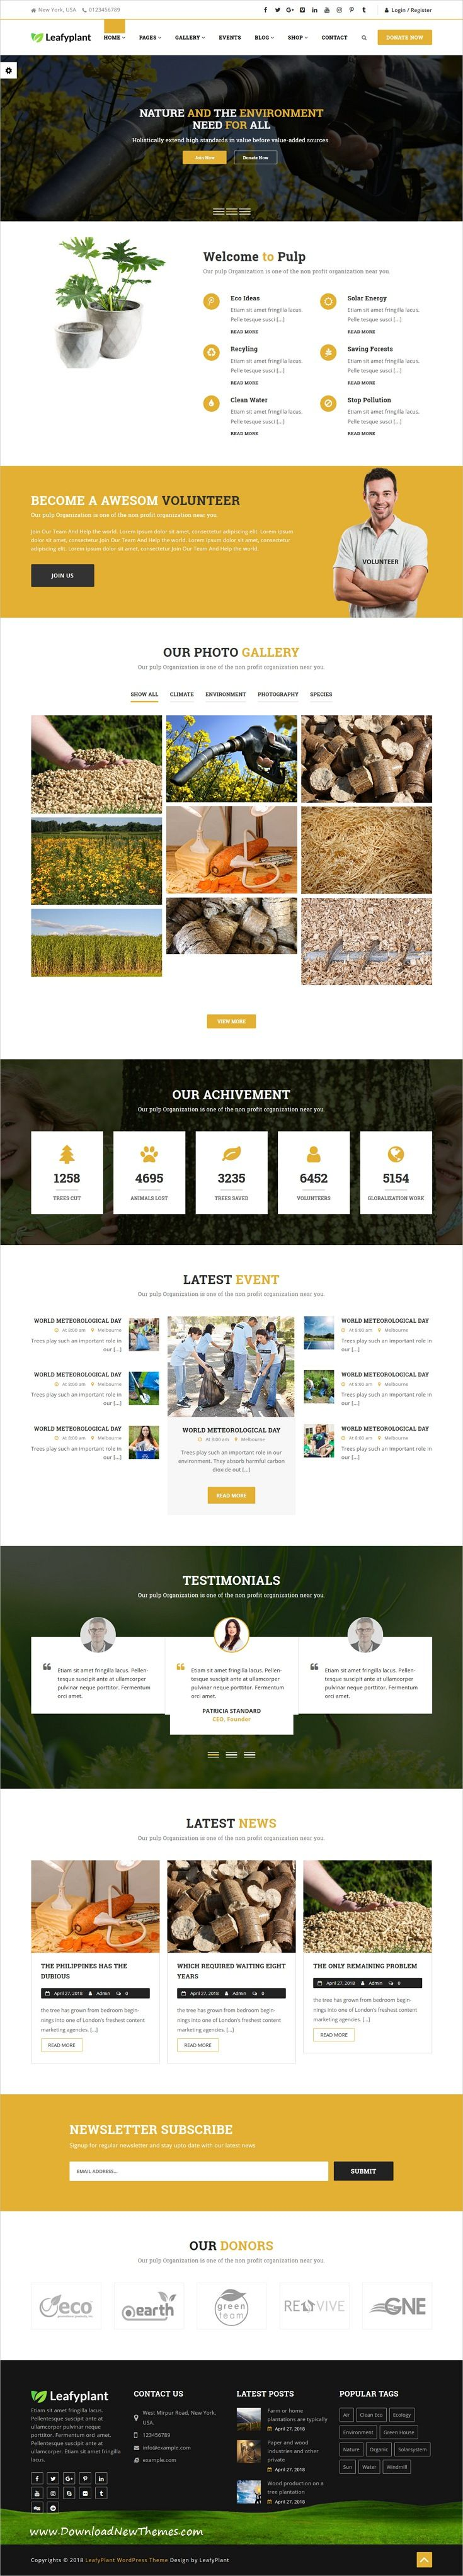 LeafyPlant is a clean and modern design 7in1 responsive multipurpose environment #WordPress template for #biodiesel, gardening, #recycle industry and …